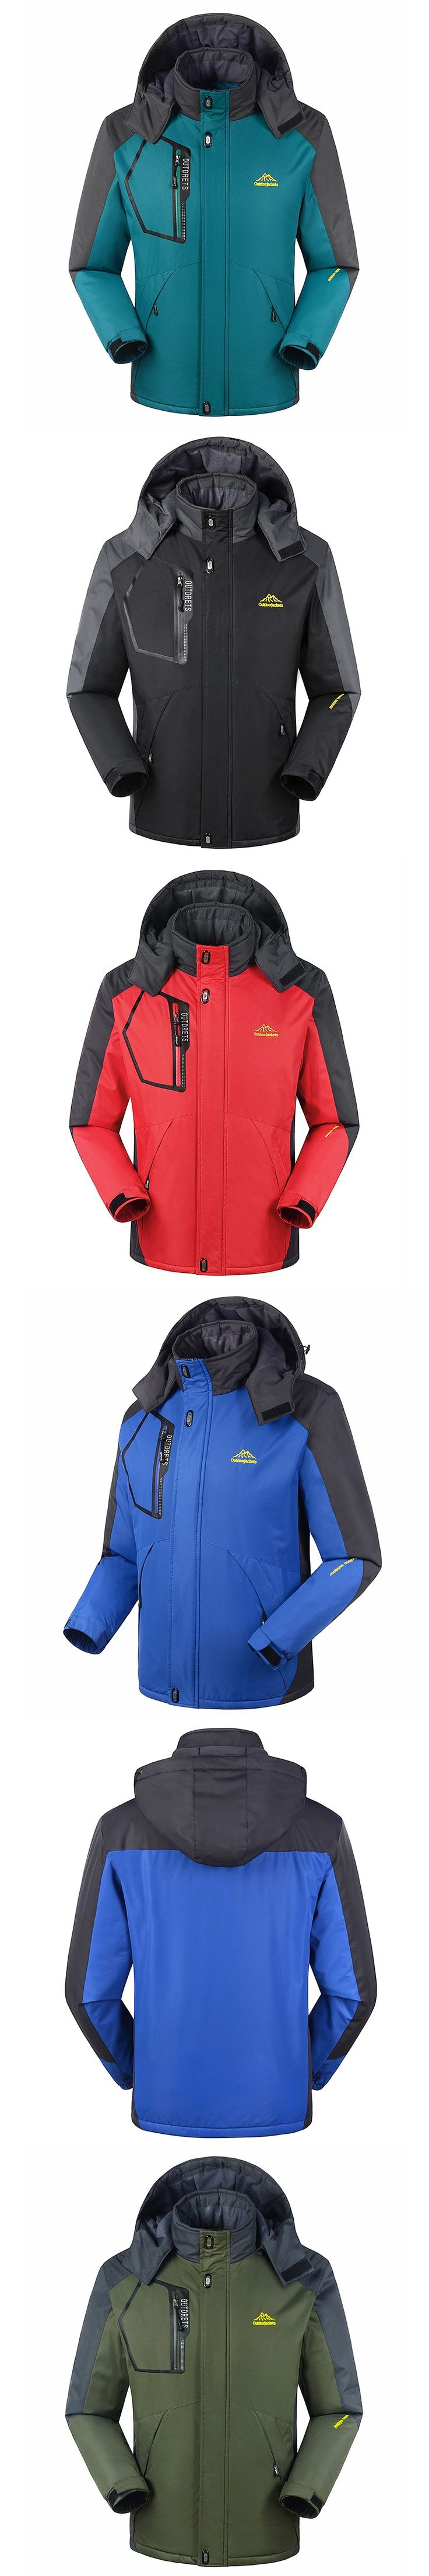 Fit -35 Plus Size L-6XL 7XL 8XL Max Chest 150CM Warm Padded Coat For men Winter Jacket With Hooded Waterproof Windproof